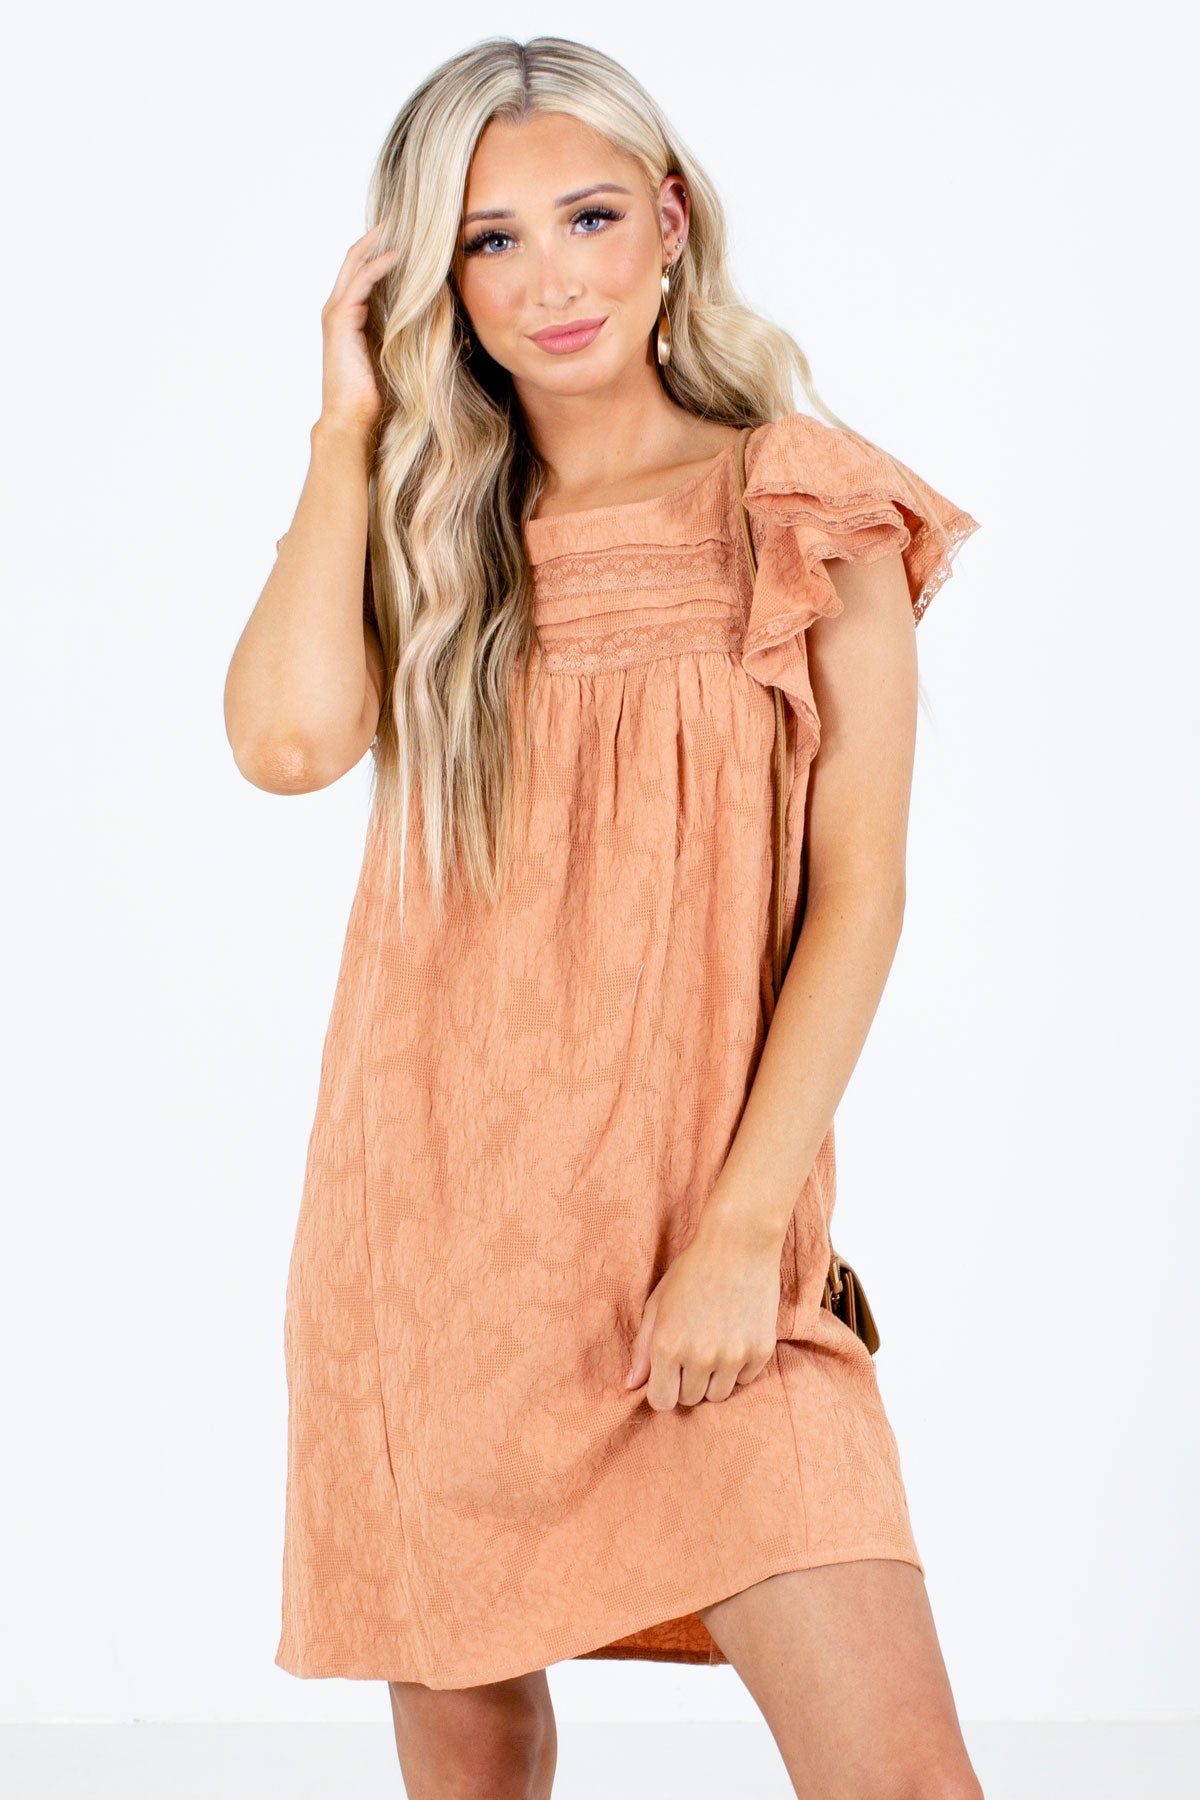 Orange Textured Material Boutique Mini Dresses for Women